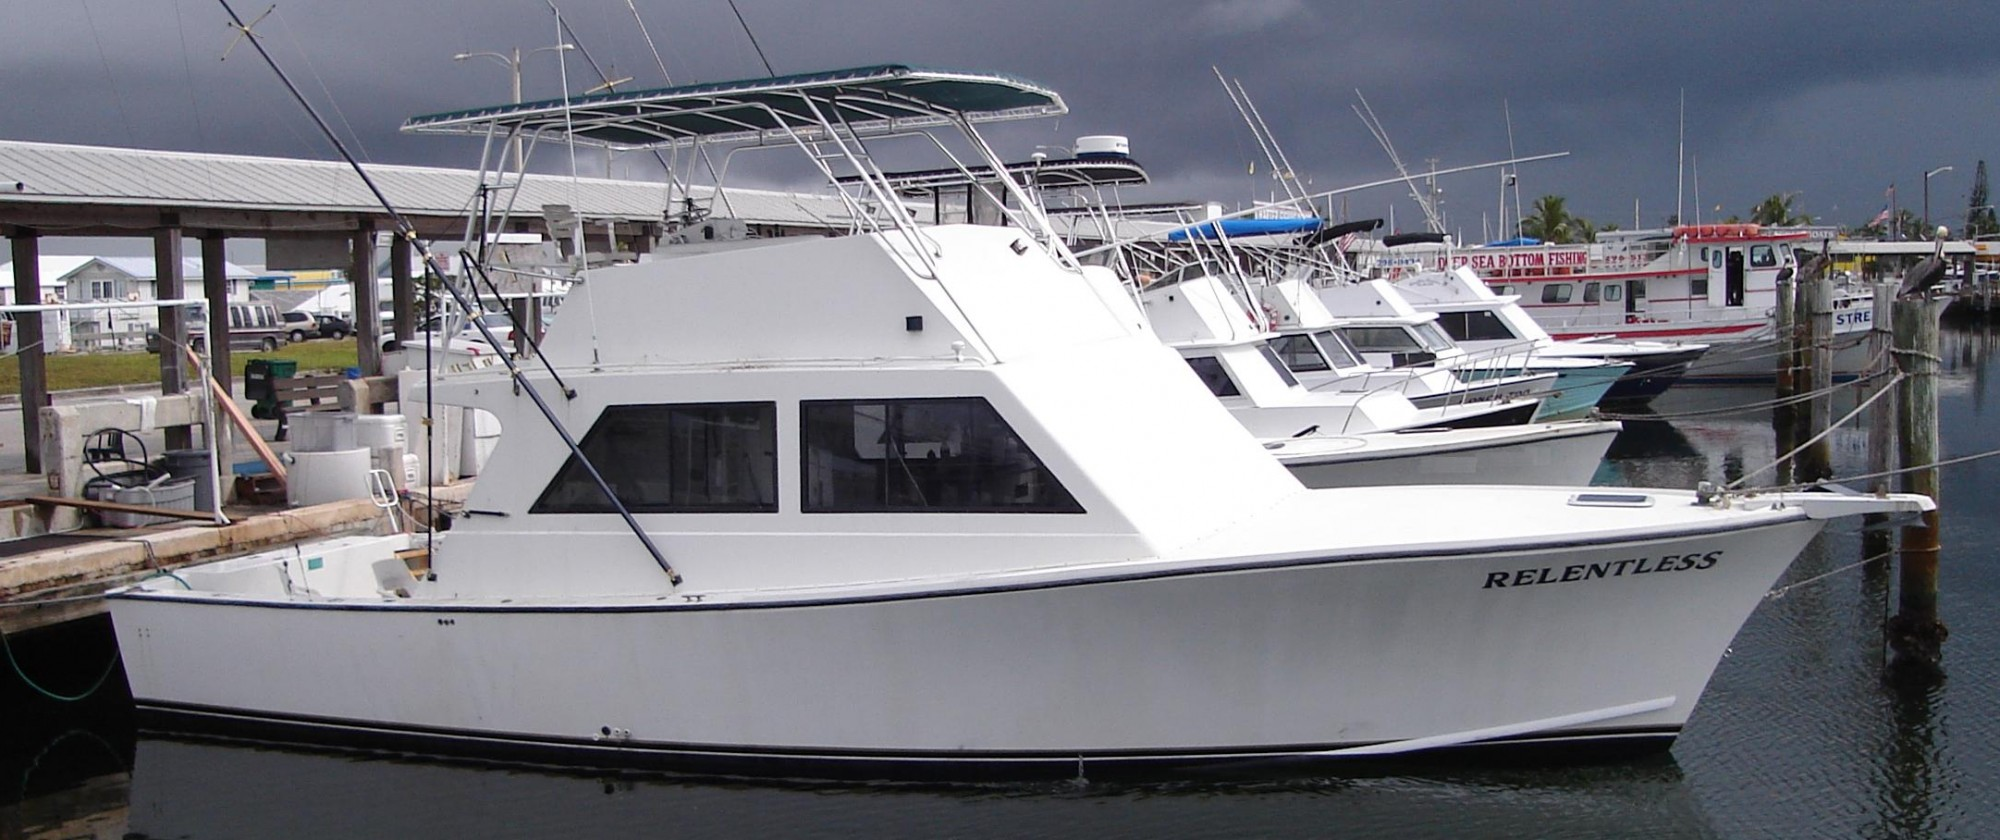 boats for sale newcastle boat packages sydney business